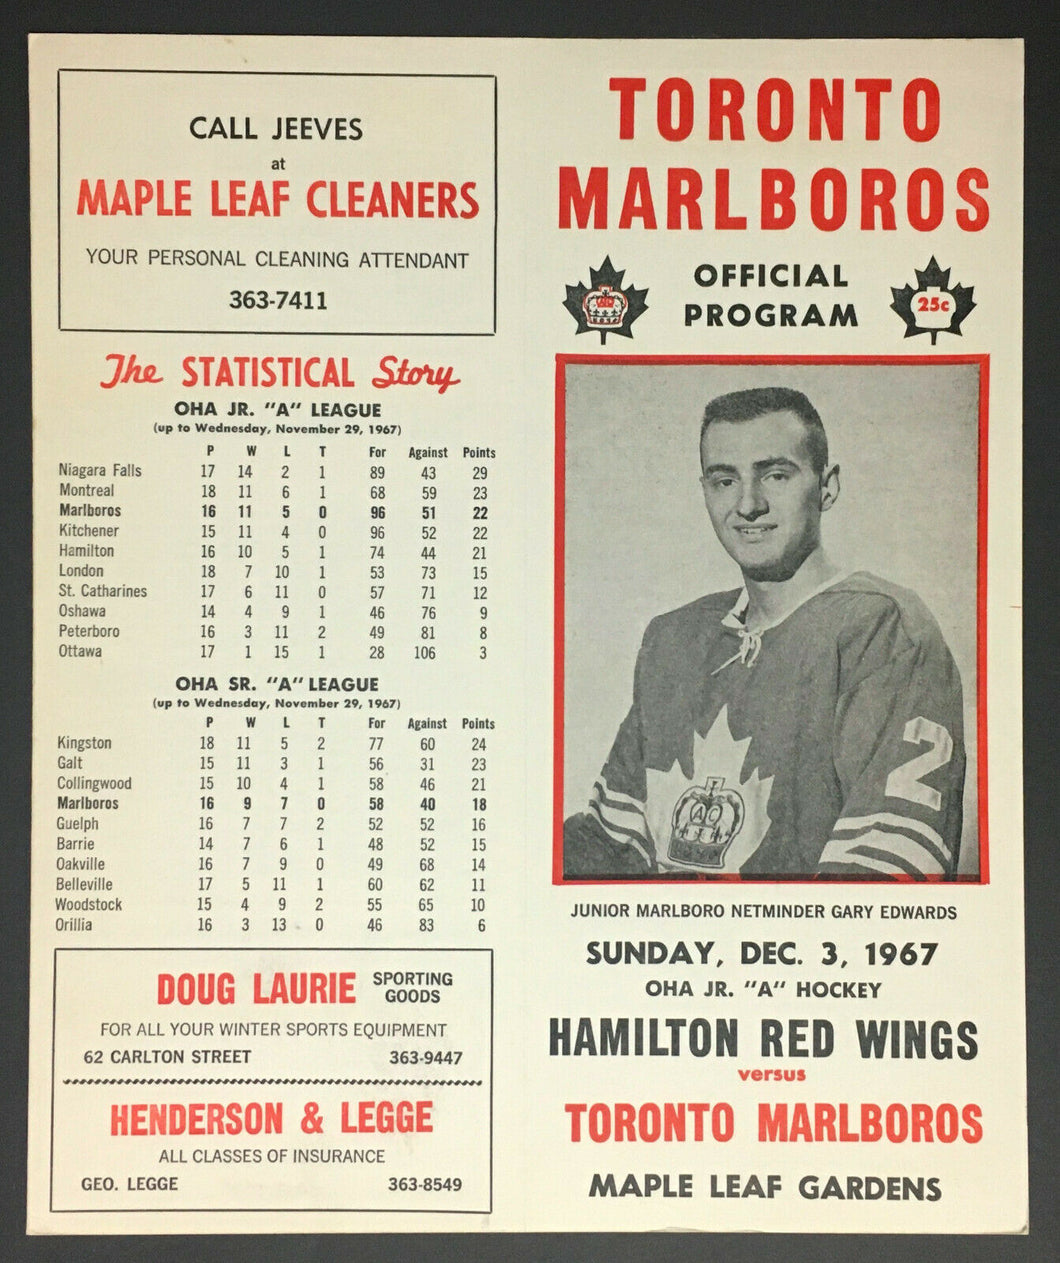 1967 Toronto Marlboros Official Hockey Game Program Hamilton Red Wings